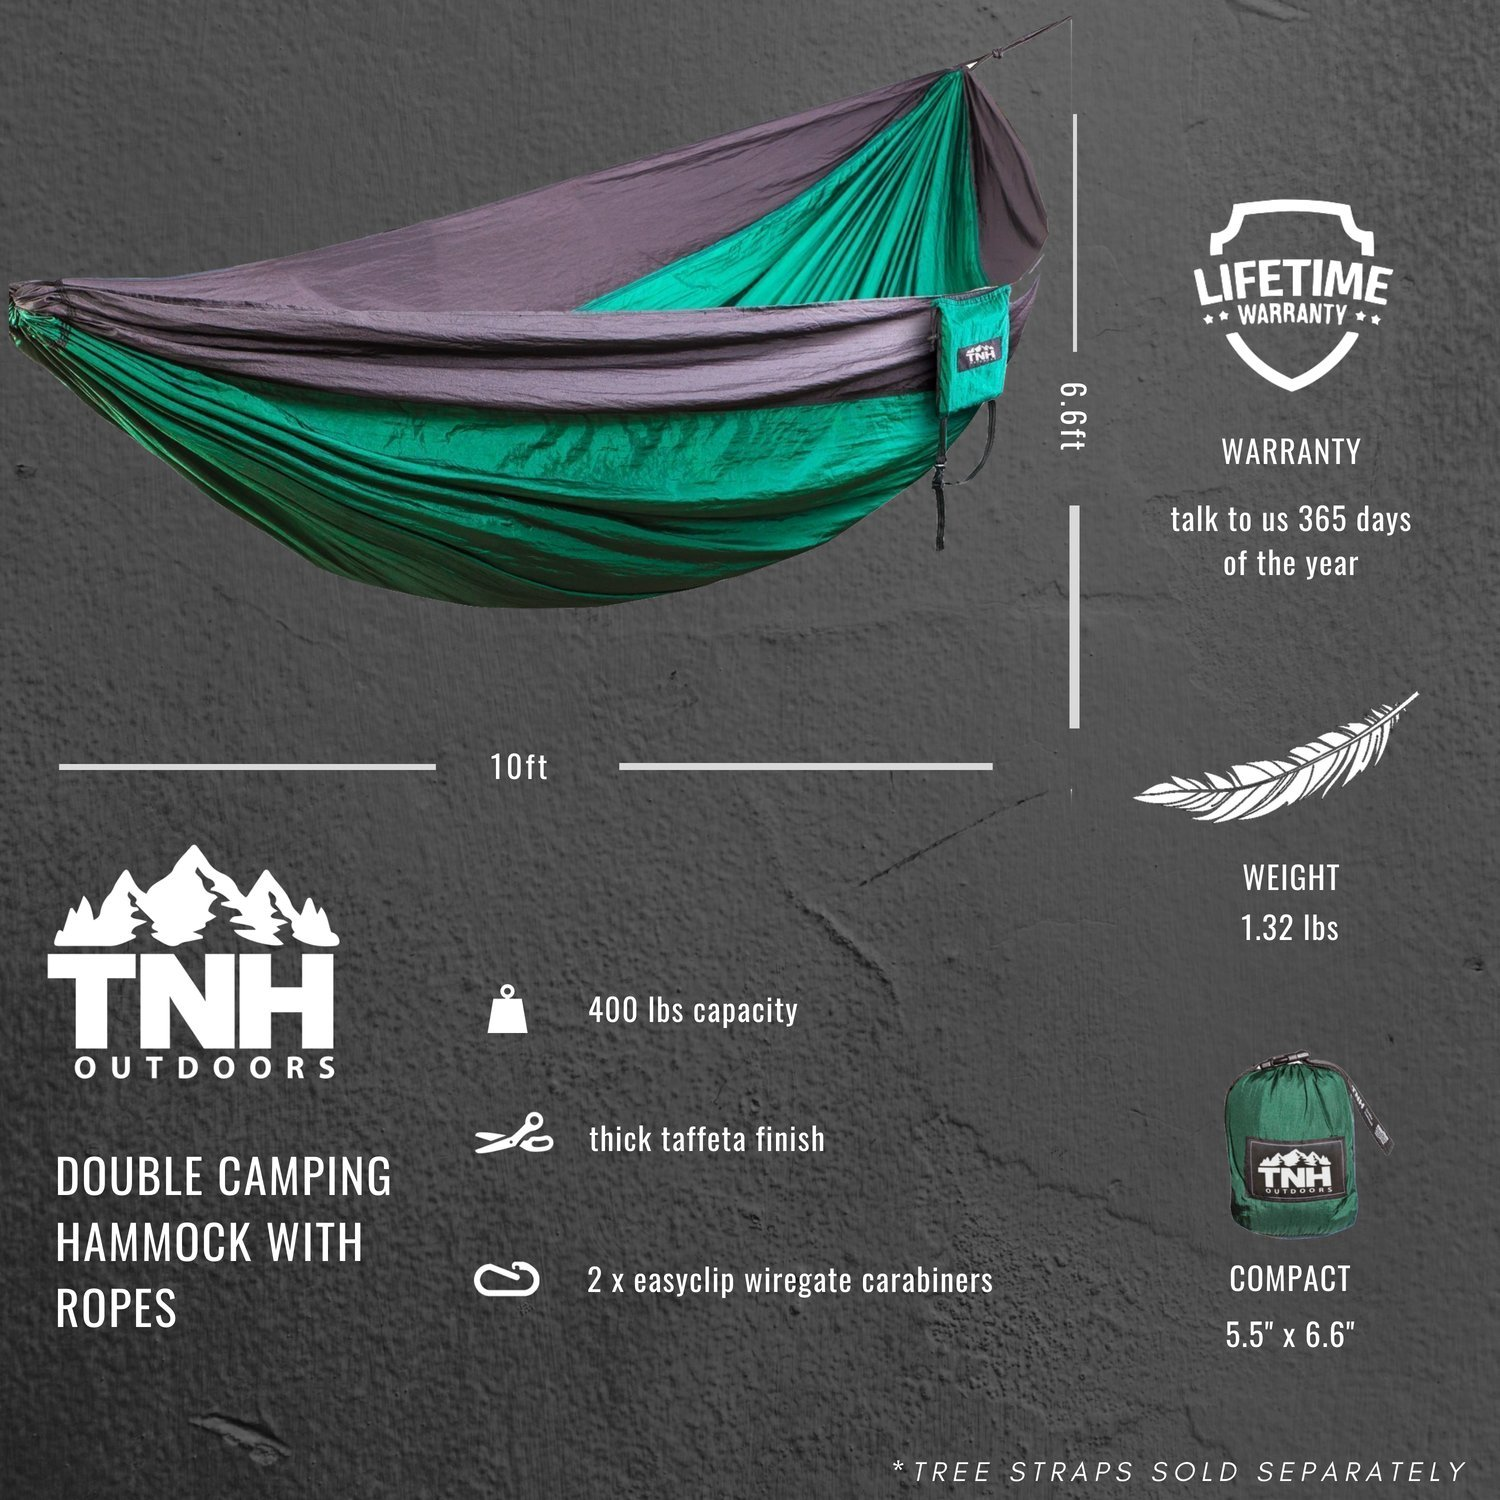 TNH Outdoors Double Single Camping Hammocks – Lightweight Nylon Portable Hammock, Best Parachute Hammock for Backpacking, Camping, Hiking, Beach with Free Heavy Duty Carabiner Clips